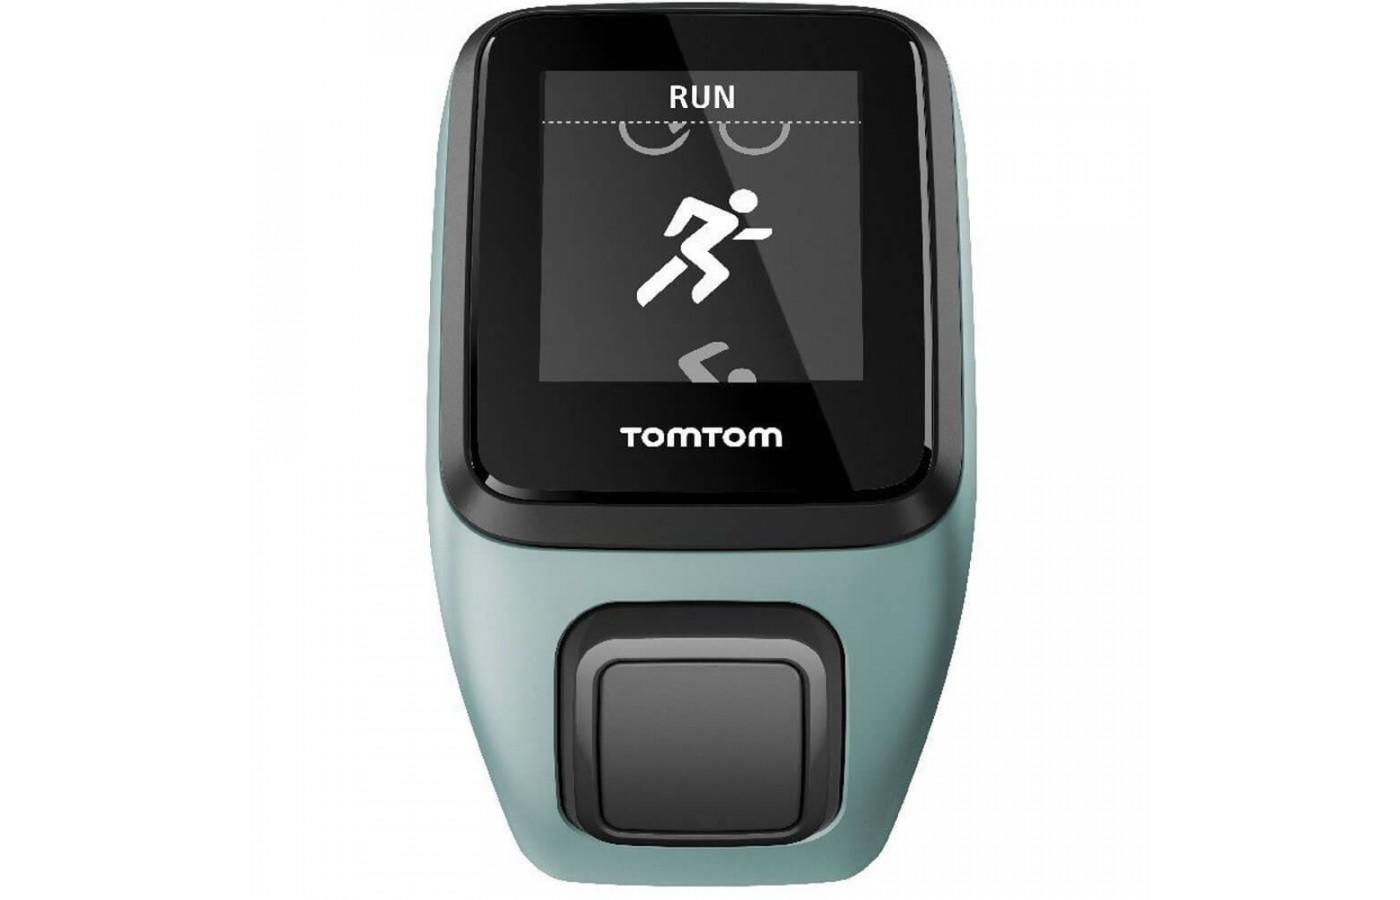 TomTom Spark tracks duration, pace, and distance